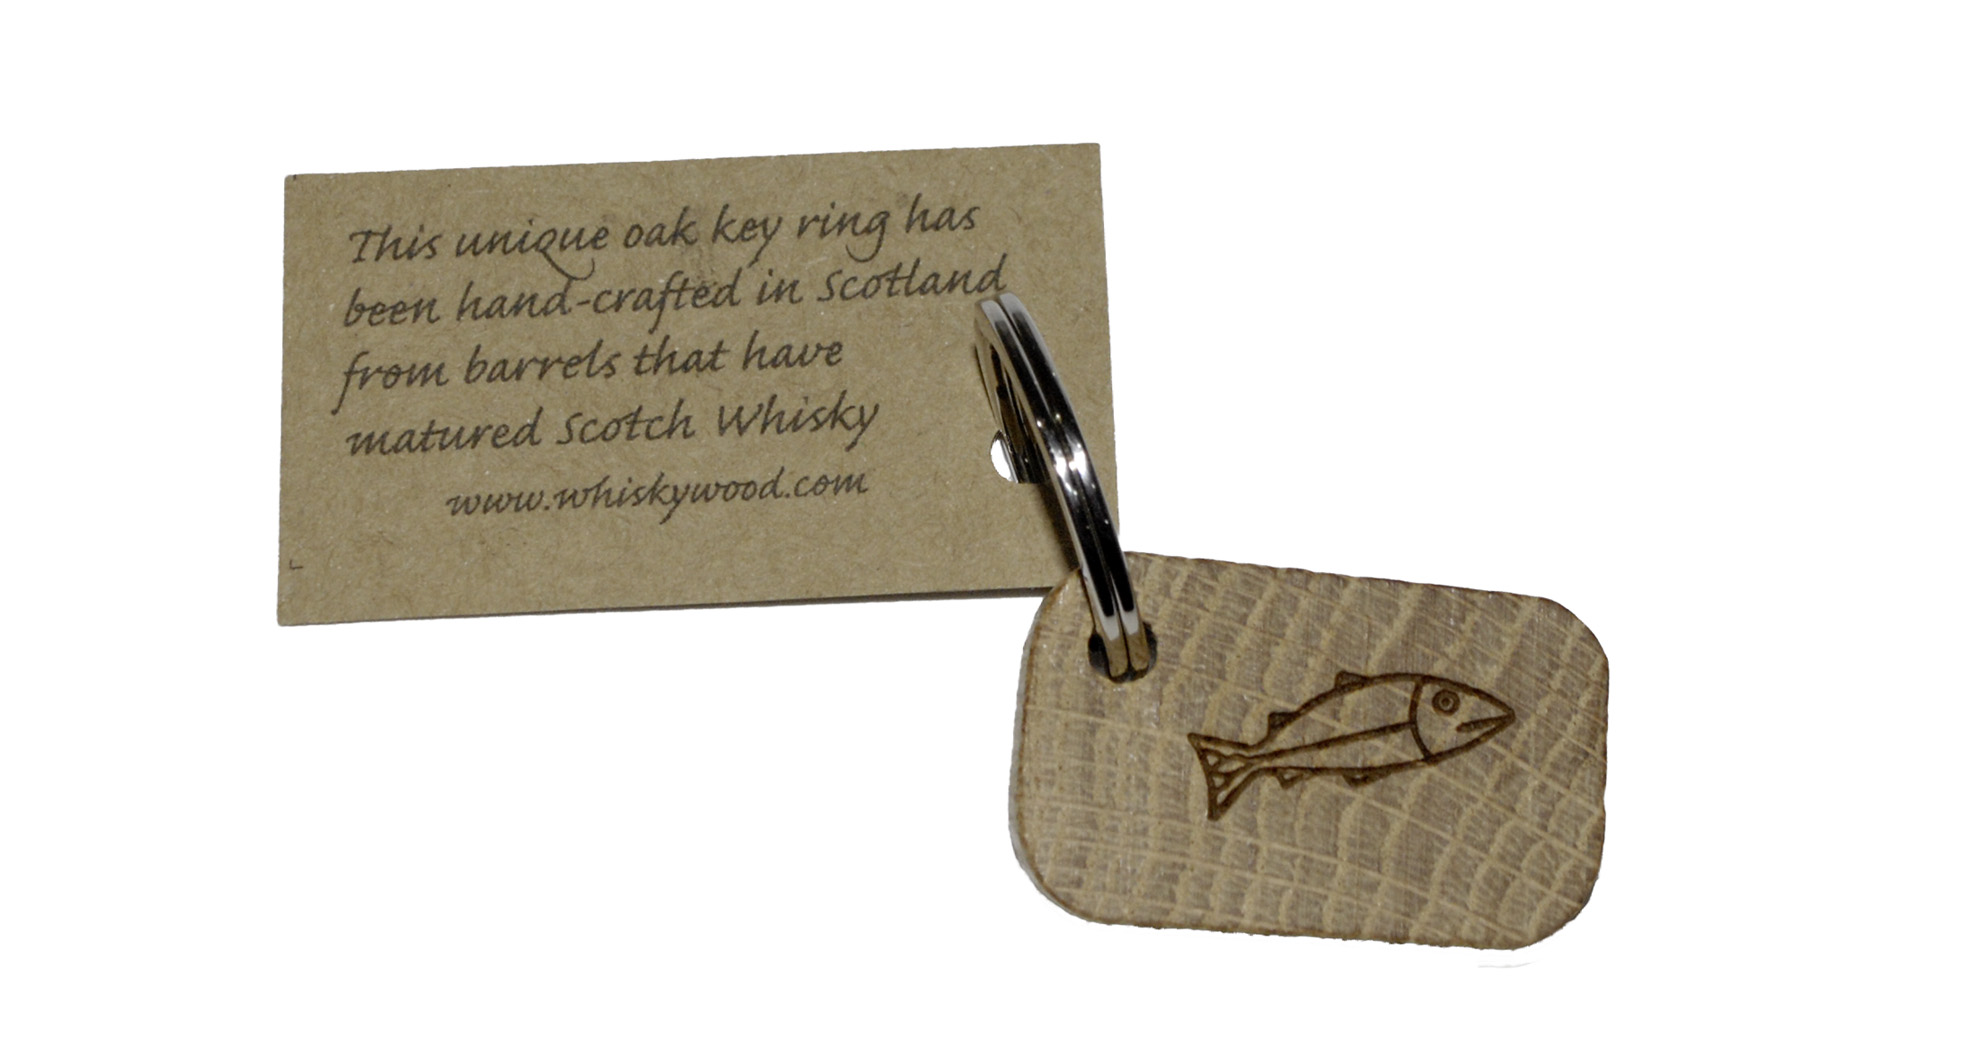 keyring from whisky barrel